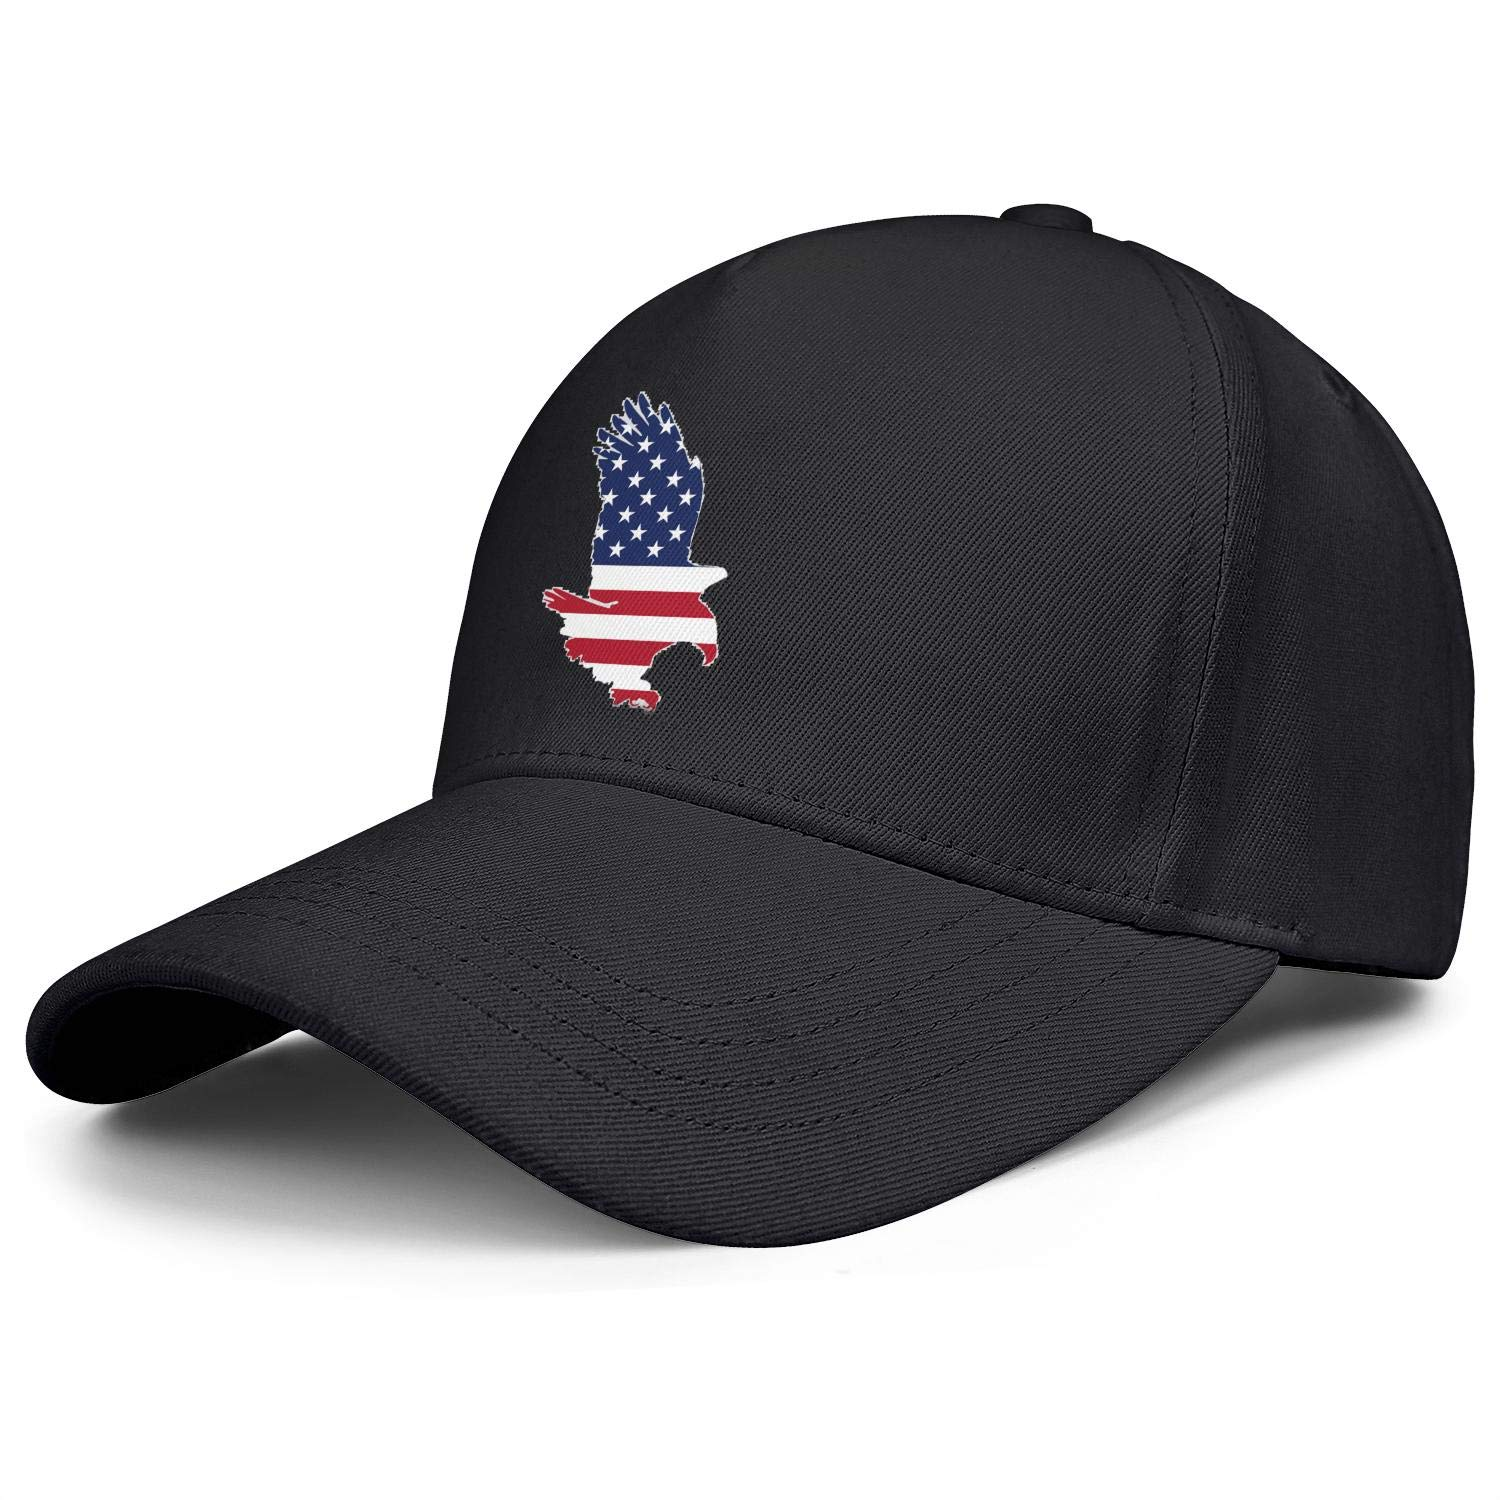 Displaying The Eagle American Flag Unisex Baseball Cap Outdoor Fishing Caps Adjustable Trucker Caps Dad-Hat